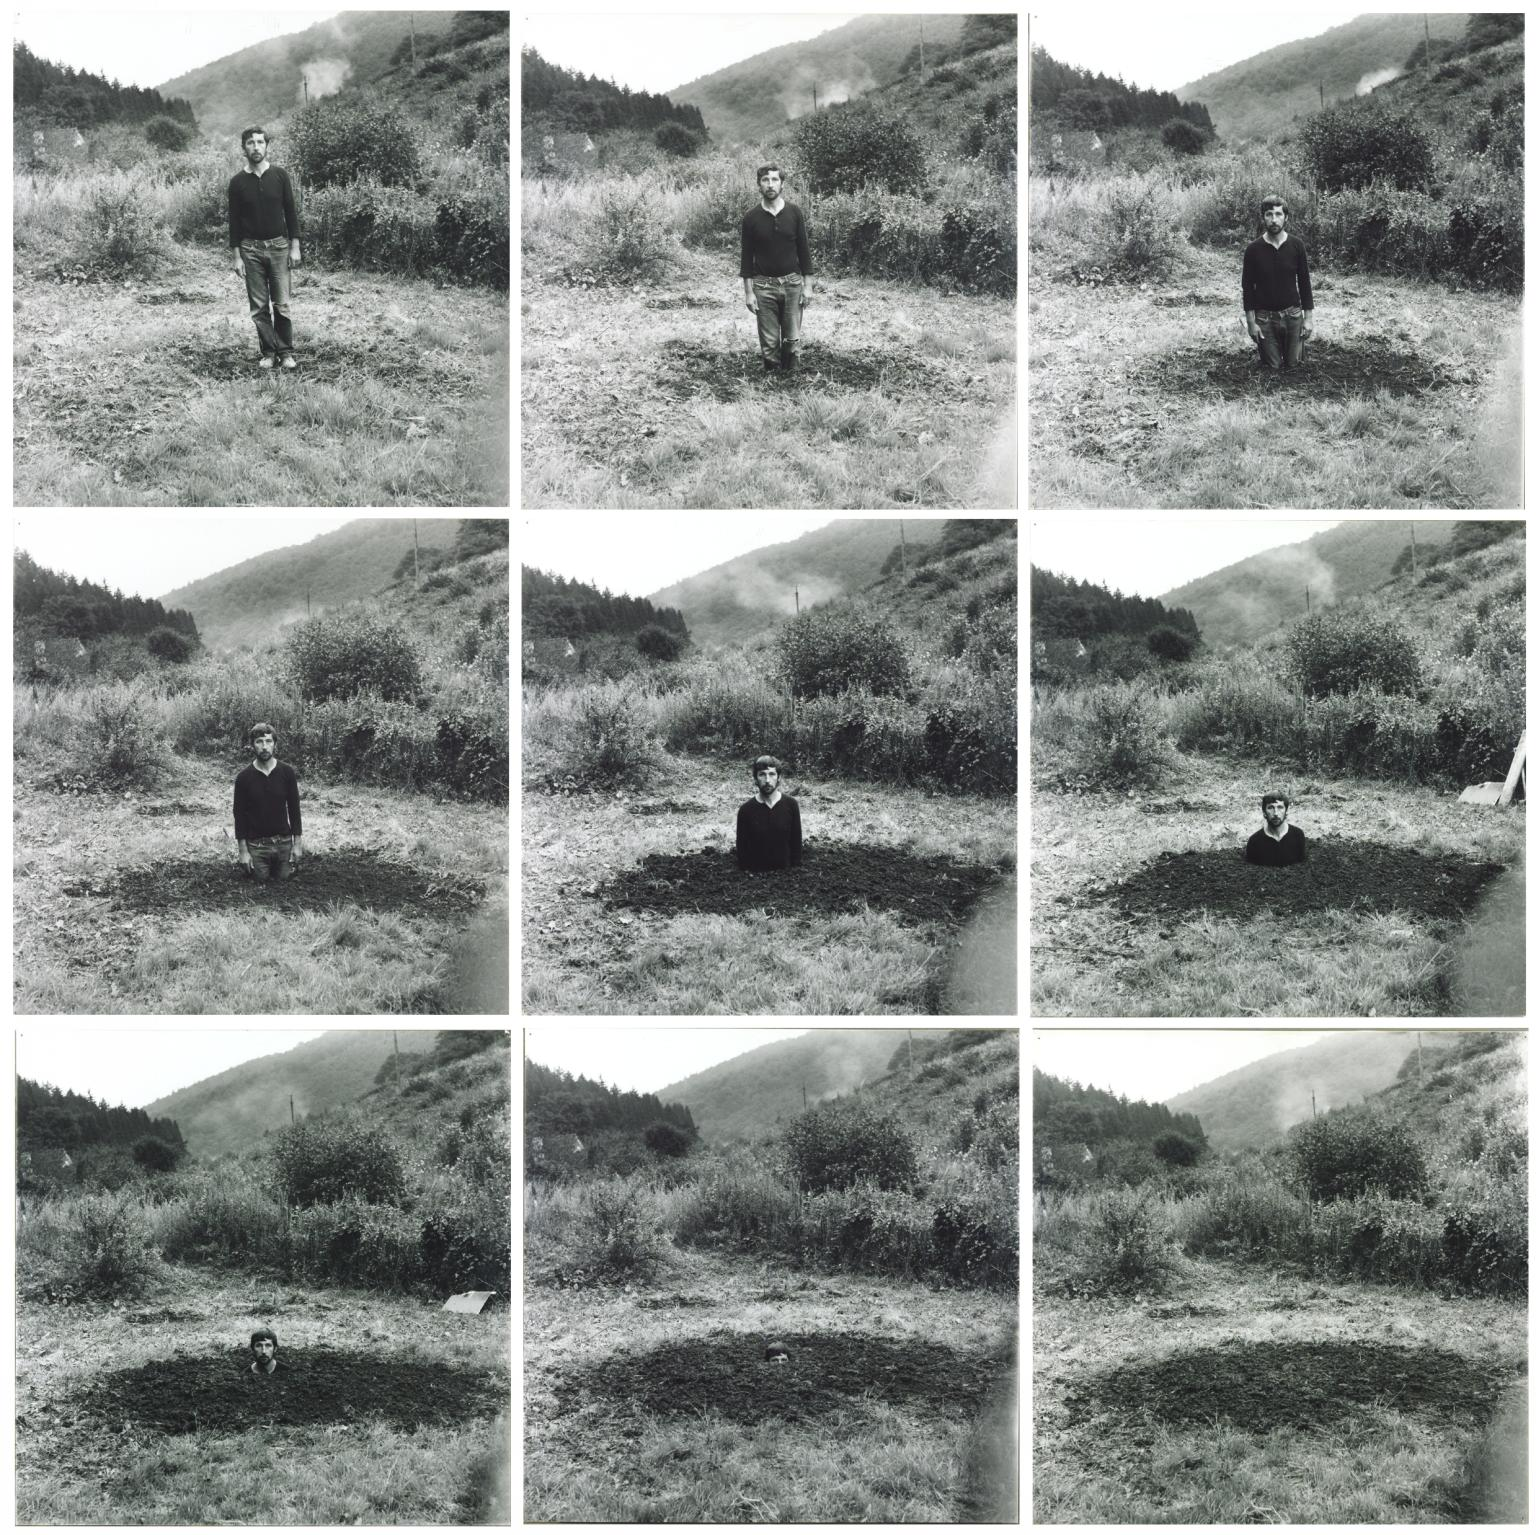 Self-Burial (Television Interference Project) 1969 Keith Arnatt 1930-2008 Presented by Westdeutsches Fernsehen 1973 http://www.tate.org.uk/art/work/T01747